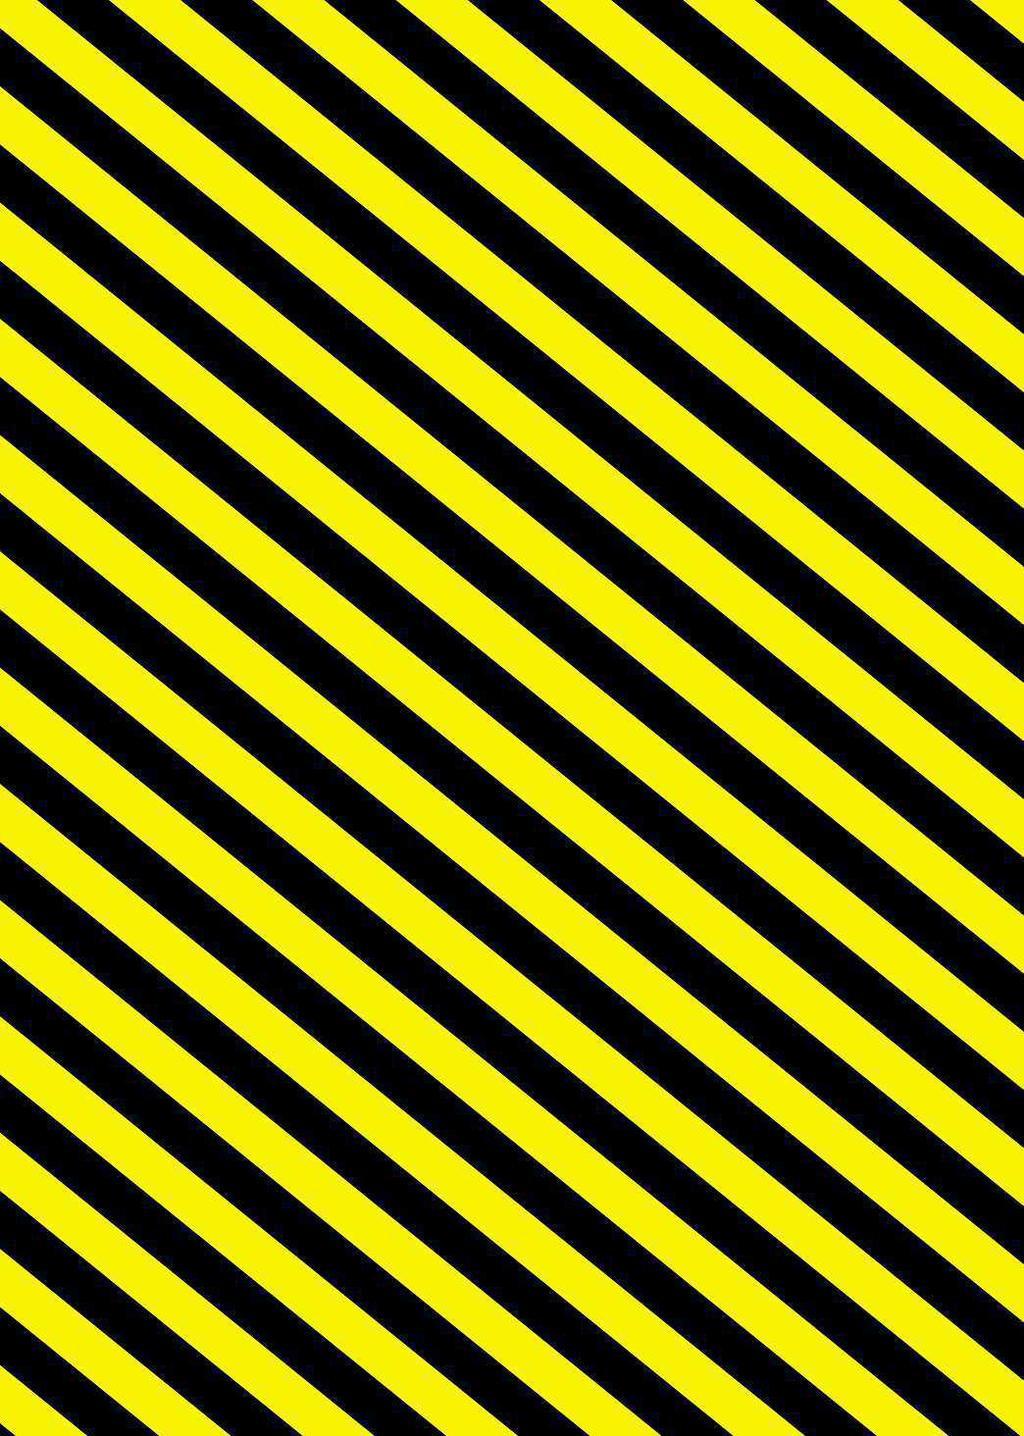 zdarma online seznamka fresno ca wft trifft man single frauen in berlin